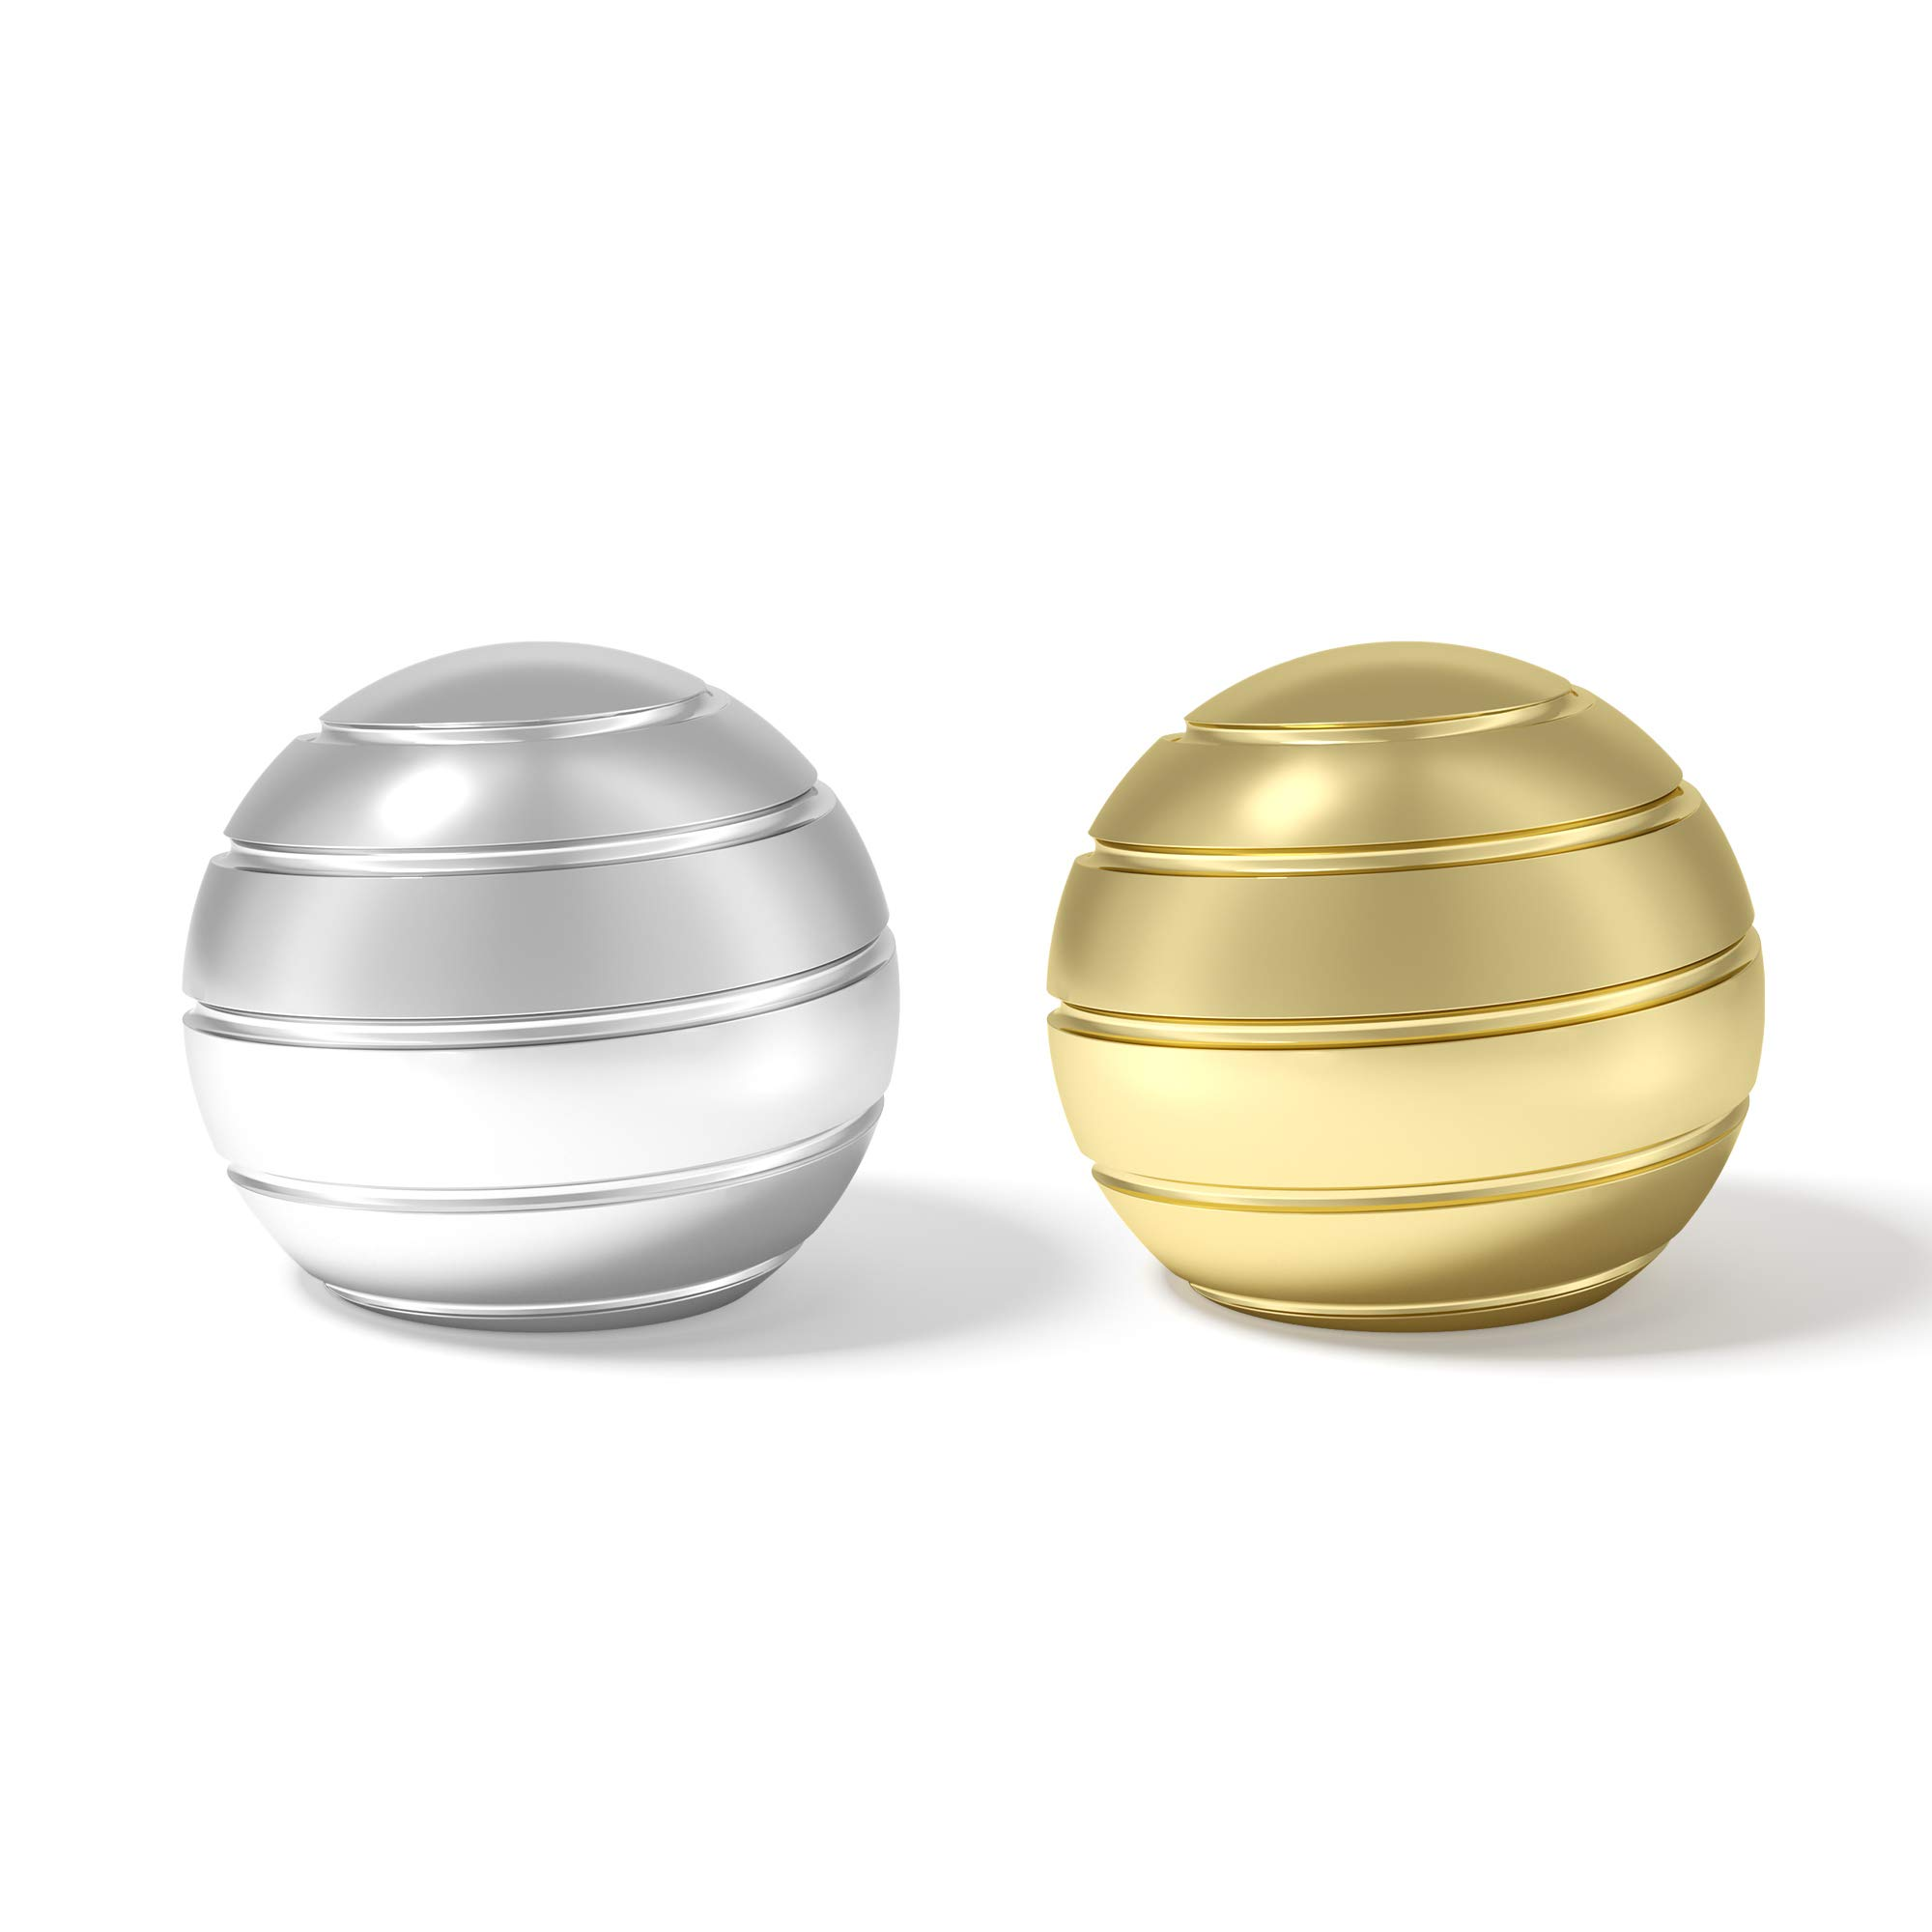 Kinetic Desk Toy Mezmeglobe With Prime Ball Bearing Provide Decoration or Pleasure Relieve Stress or Inspire Creativity (Silver Gold)